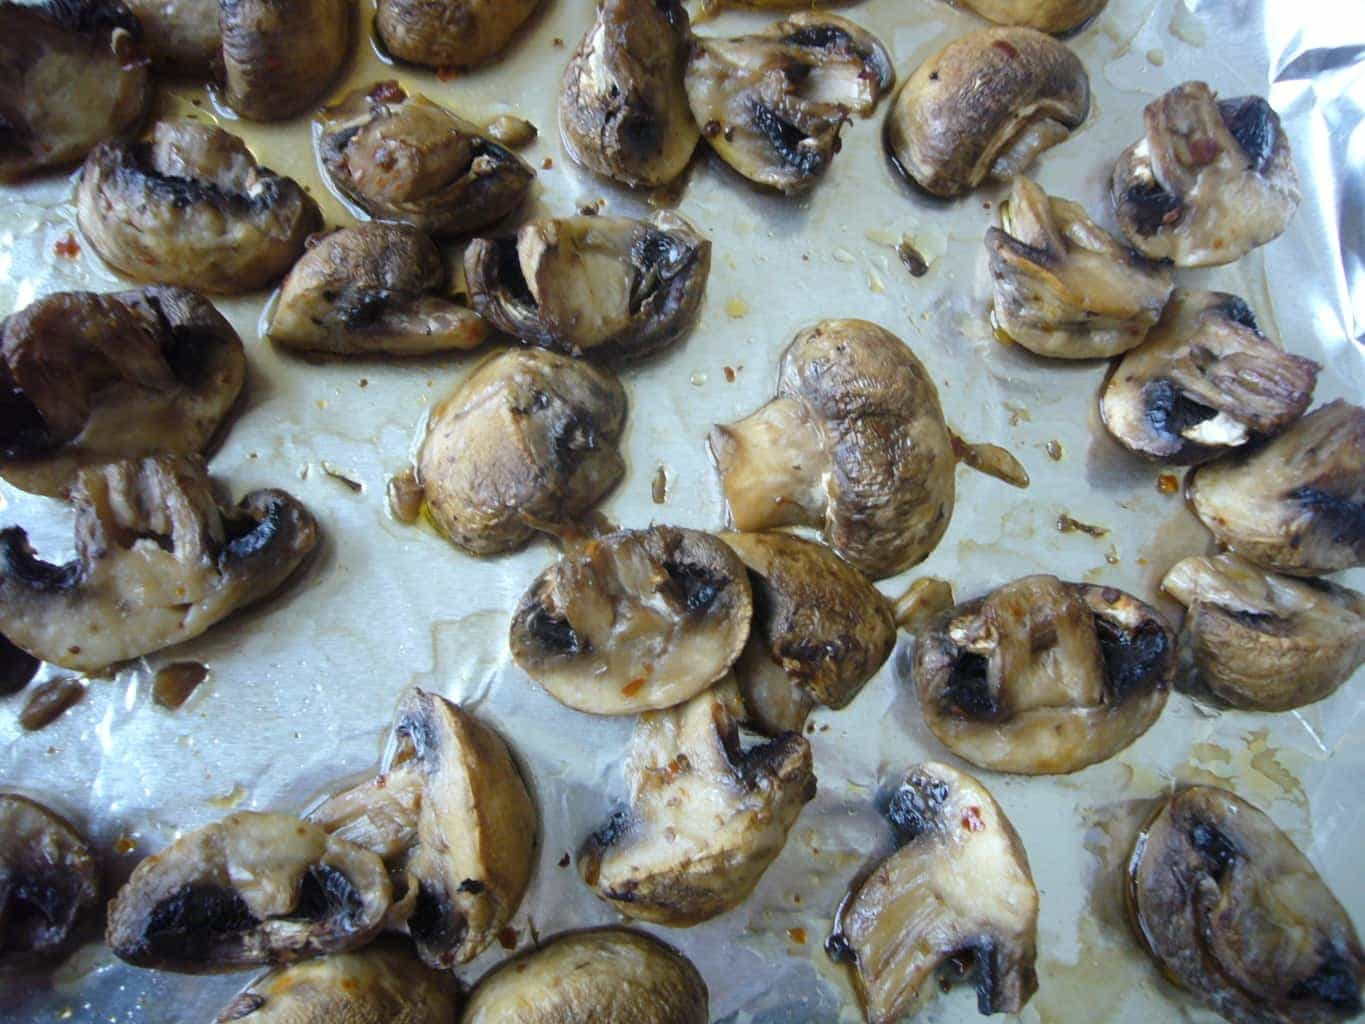 Roasted mushrooms on a baking sheet.